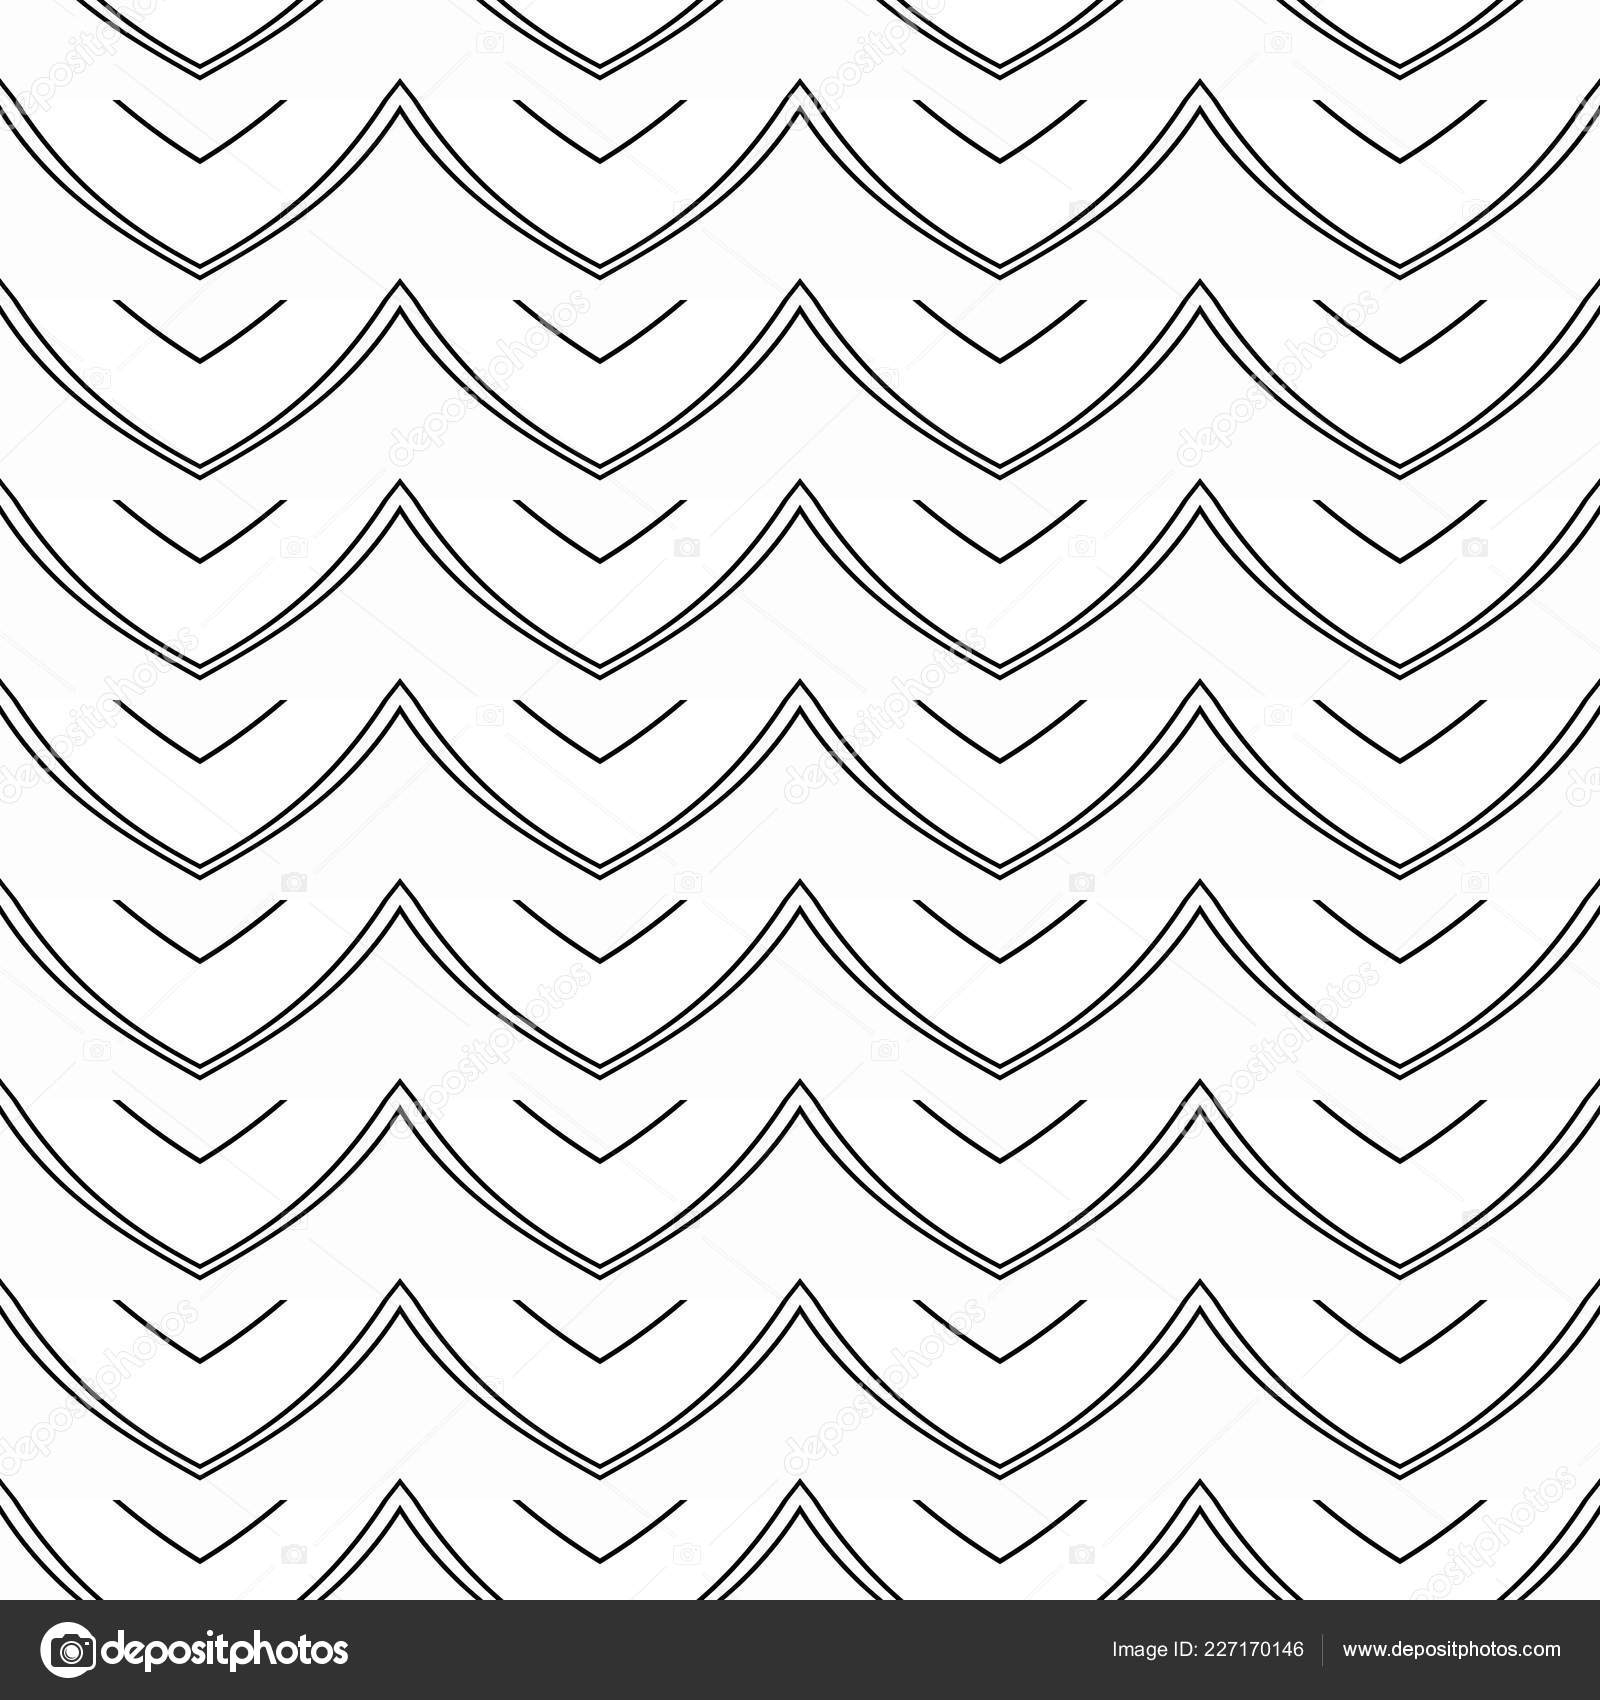 Black And White Geometric Background With Thin Lines Seamless